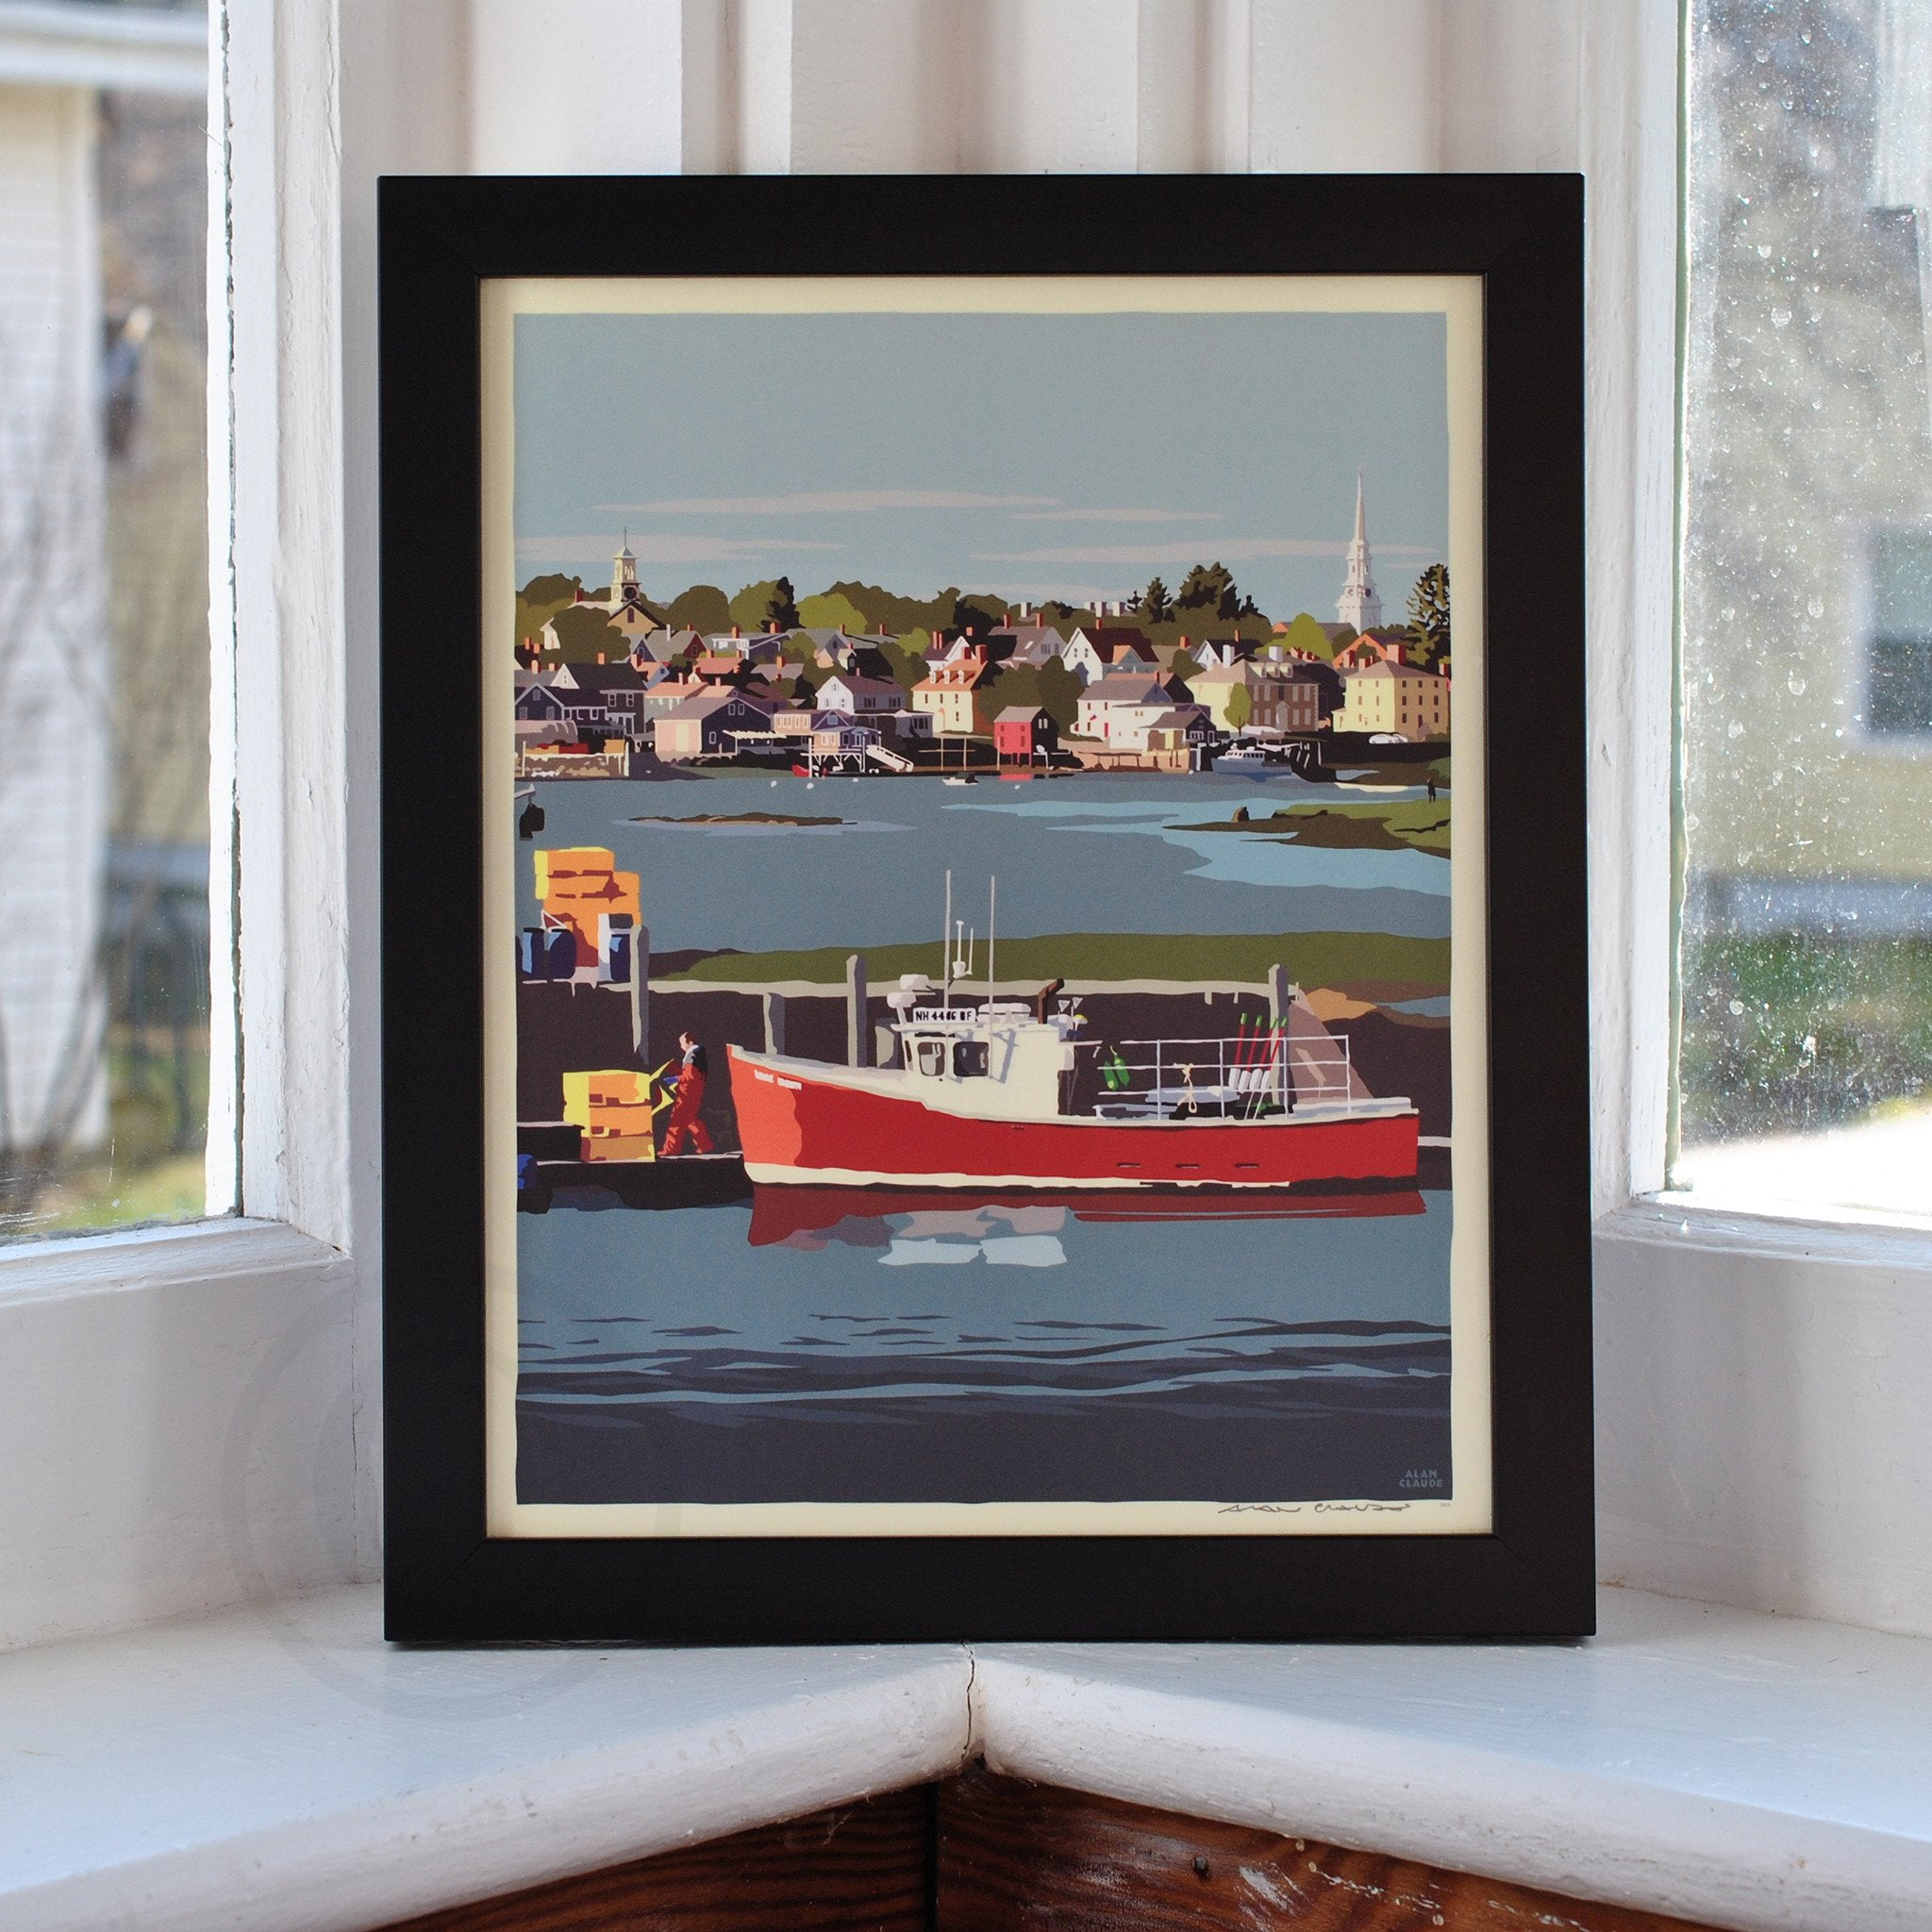 "Red Lobster Boat Art Print 8"" x 10"" Framed Wall Poster - New Hampshire"